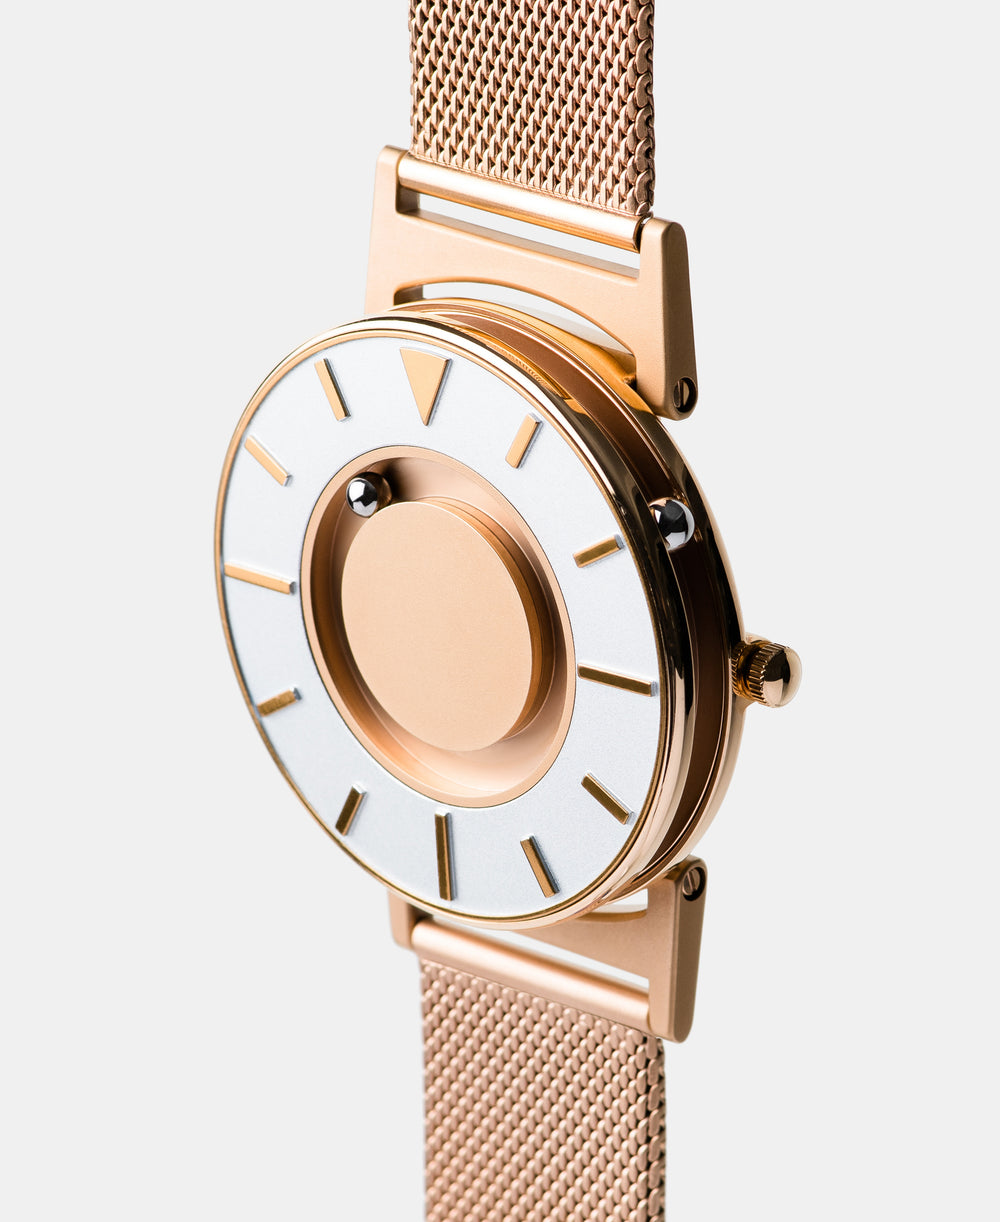 A photo of the watch from a side angle. The recessed track around the outside of the watch face is shown with the hour ball bearing in the track. The raised markers are noticeable from this perspective.